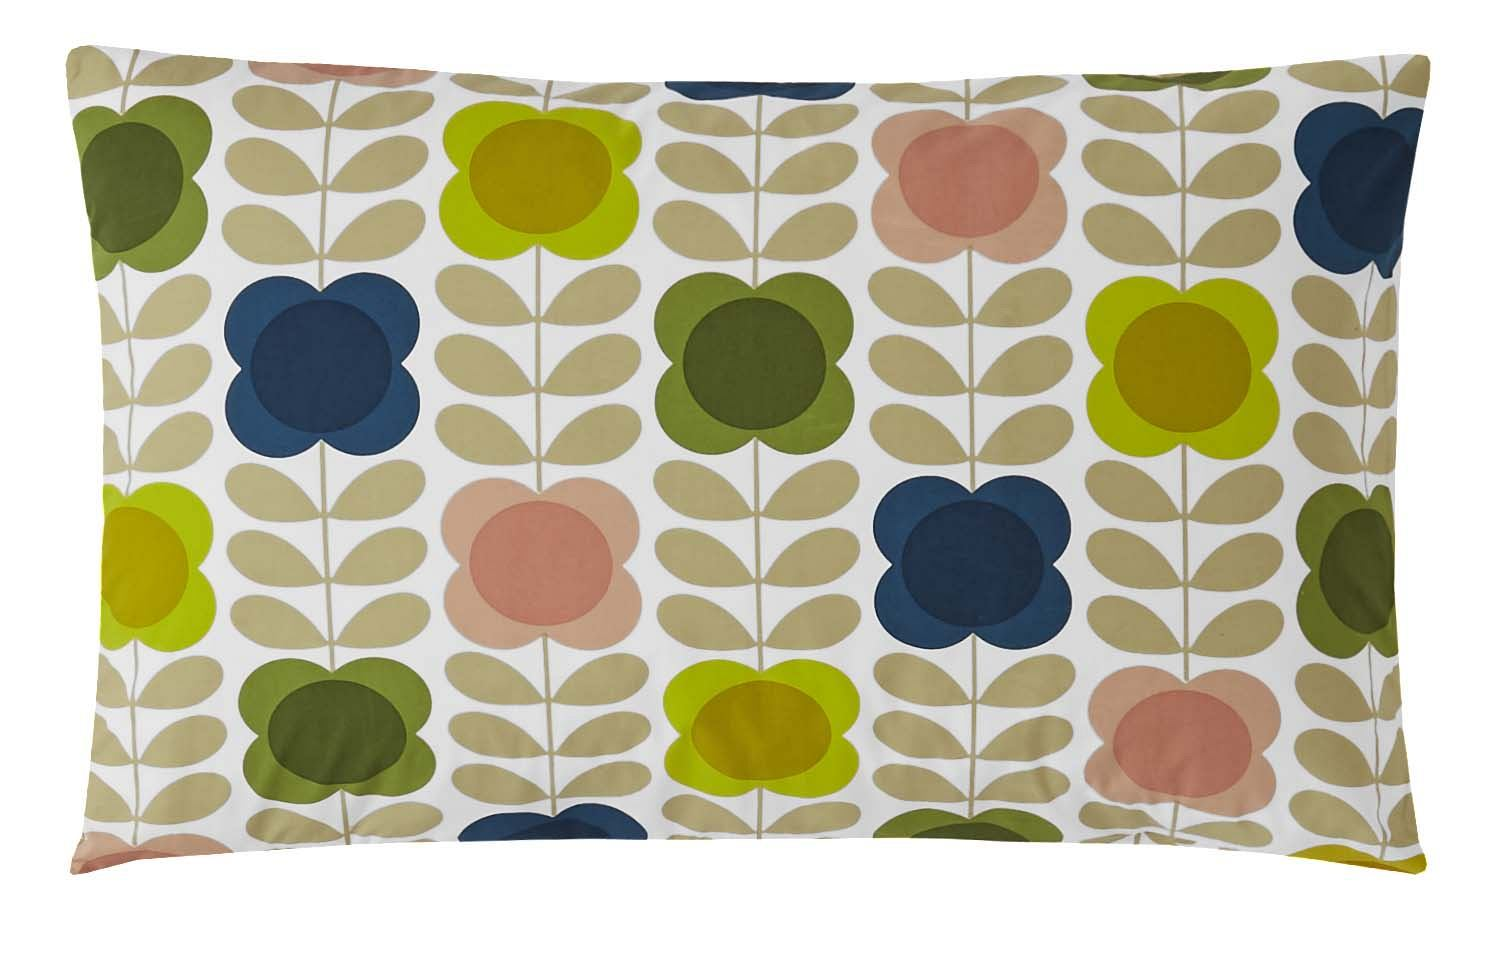 Orla Kiely Linear Stem Cushion Sunflower Ashley Wilde Best Christmas Gifts 2018